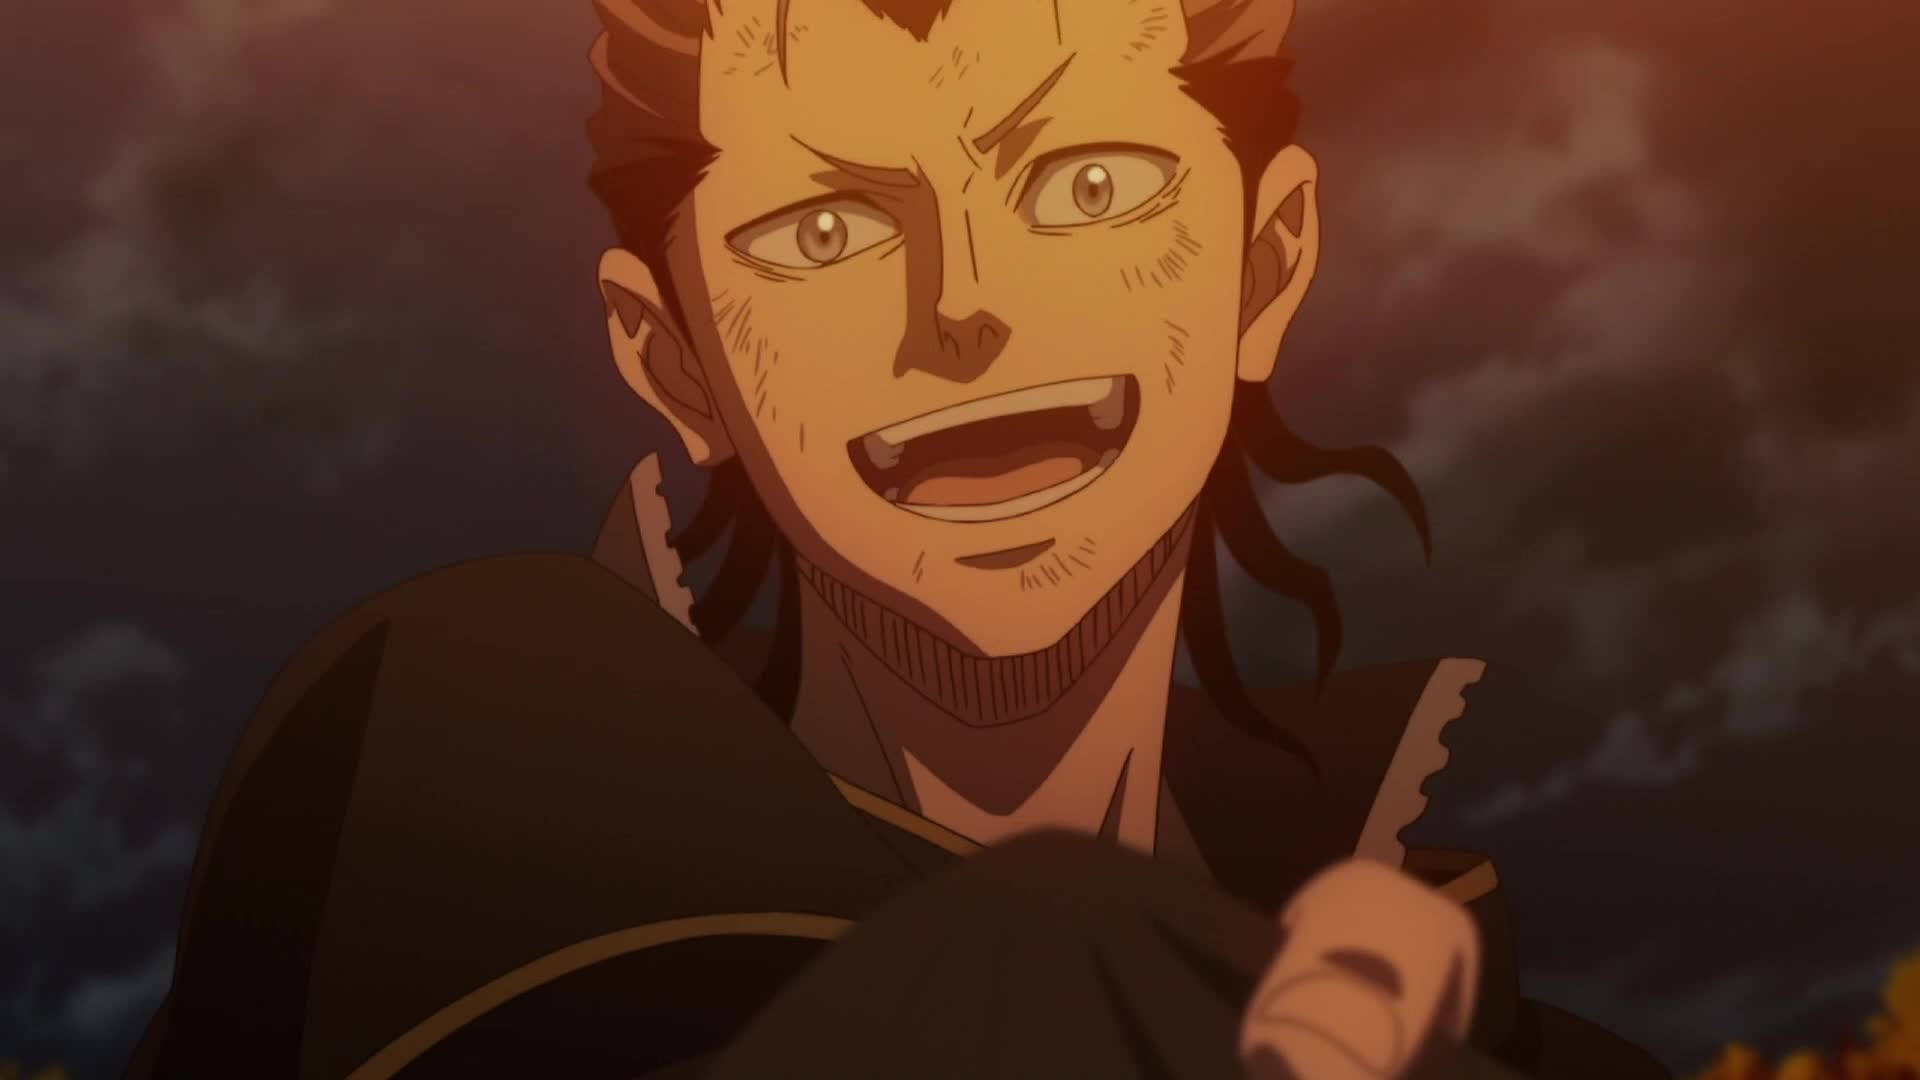 Asta, Black Clover, Black Clover ep 6, Black Clover episode 6, Funimation, action, anime, funny, You did it Asta! GIFs